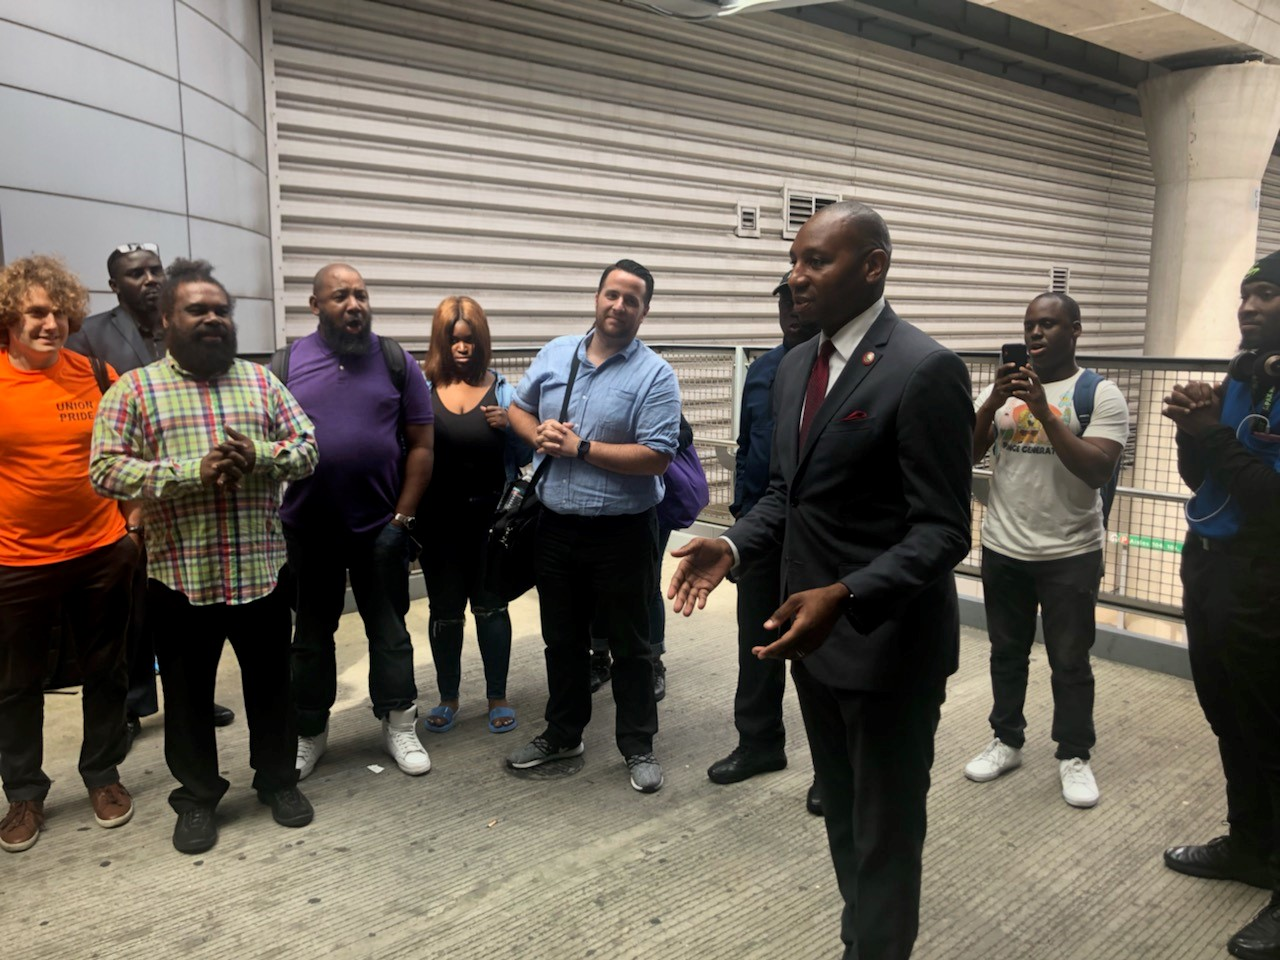 Fearing Wage Theft, Workers At JFK Seek Better Access to Pay Records